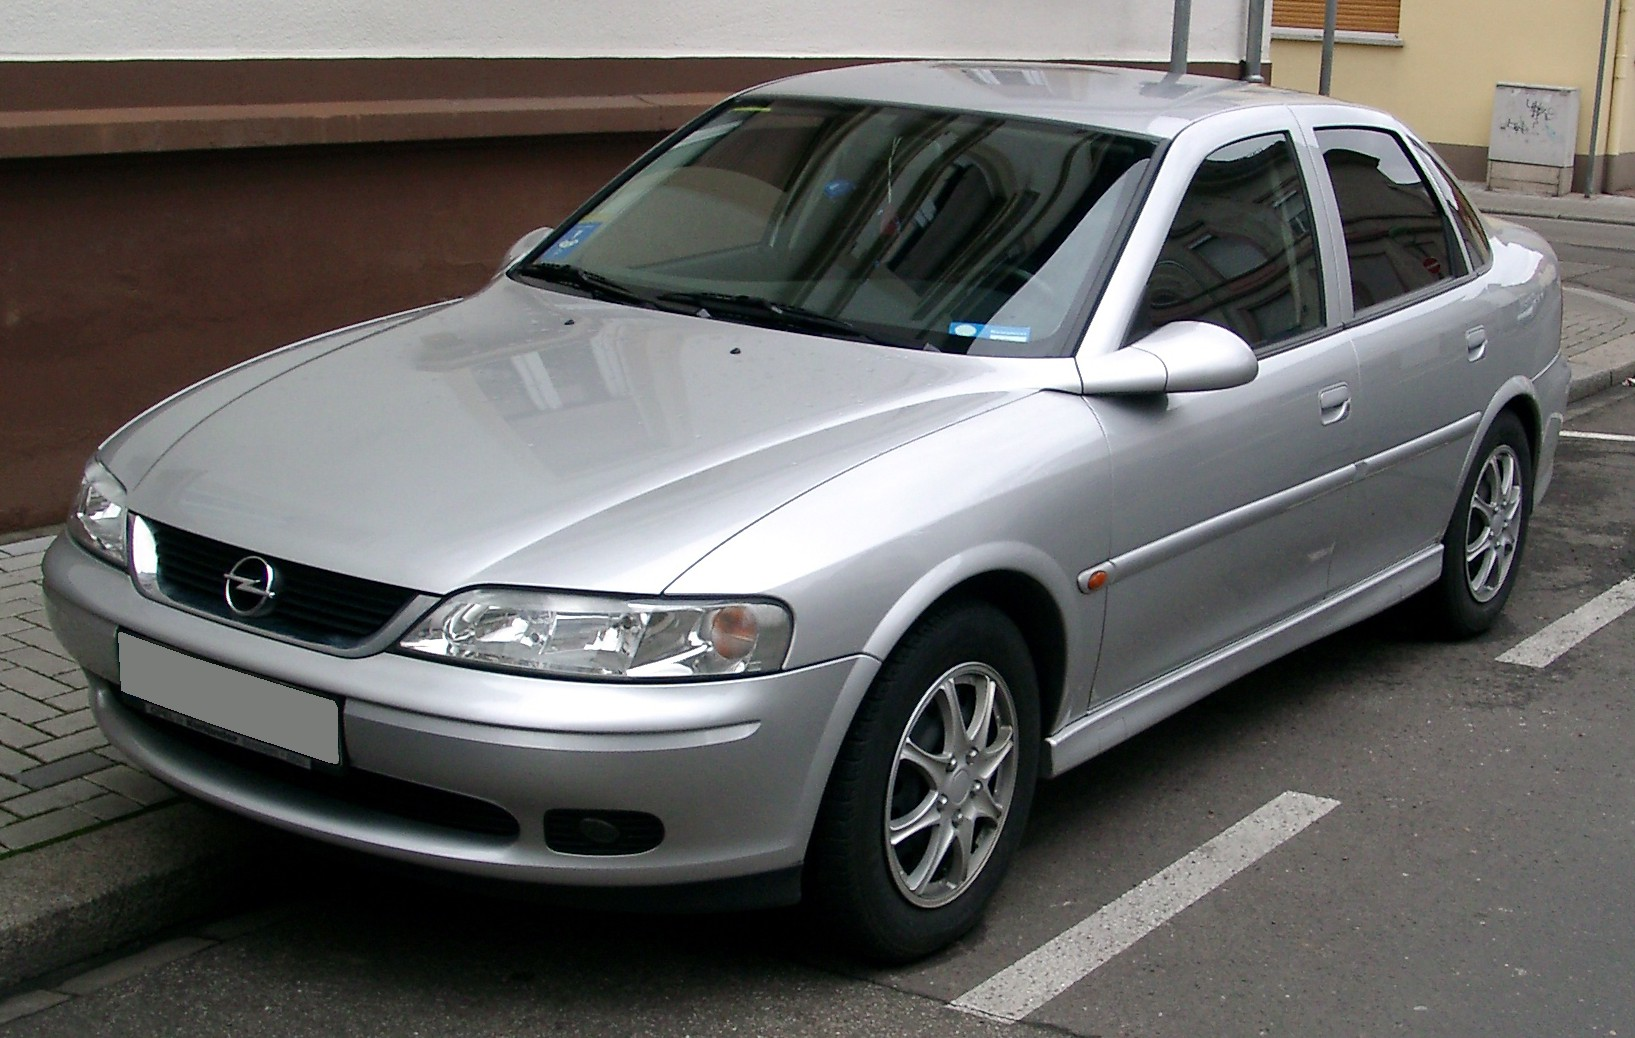 Cars holden vectra (b) 2004